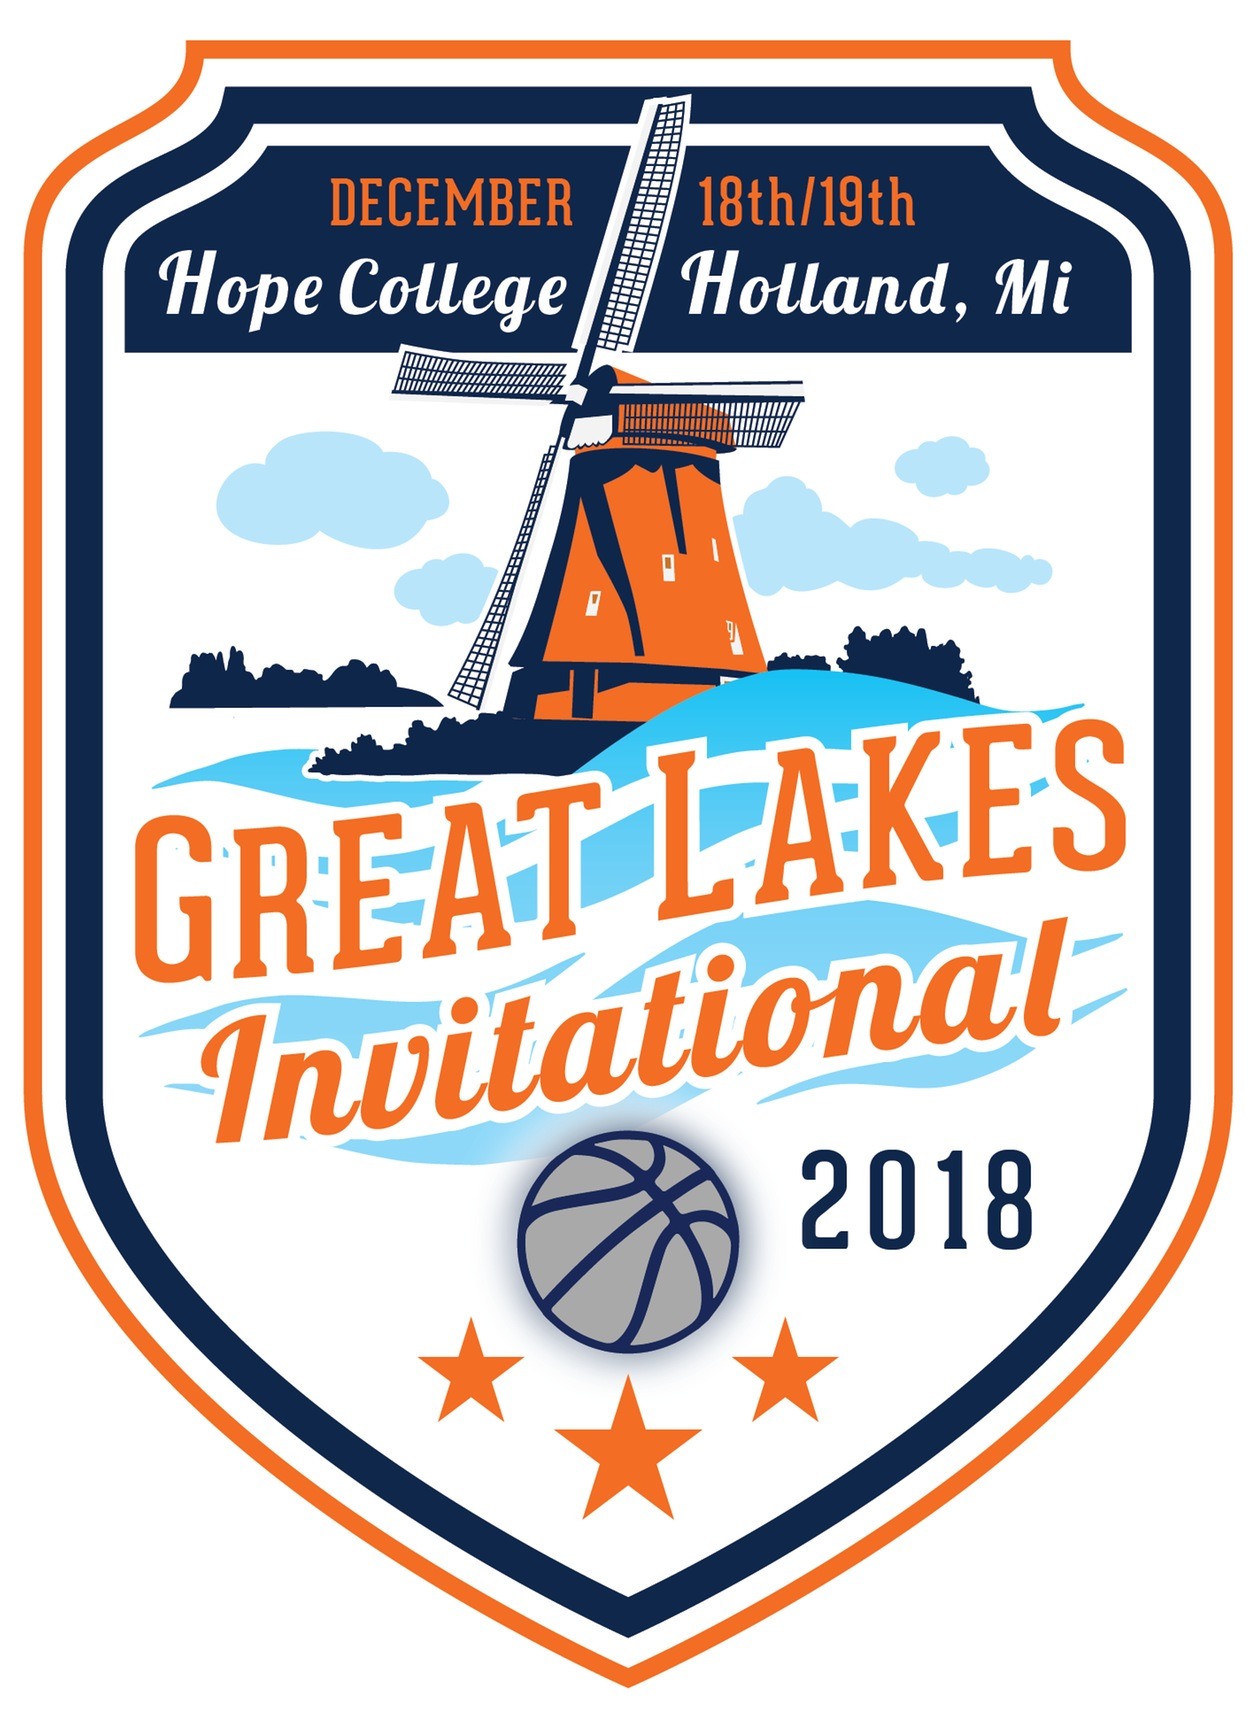 Great Lakes Invitational logo with windmill and a basketball